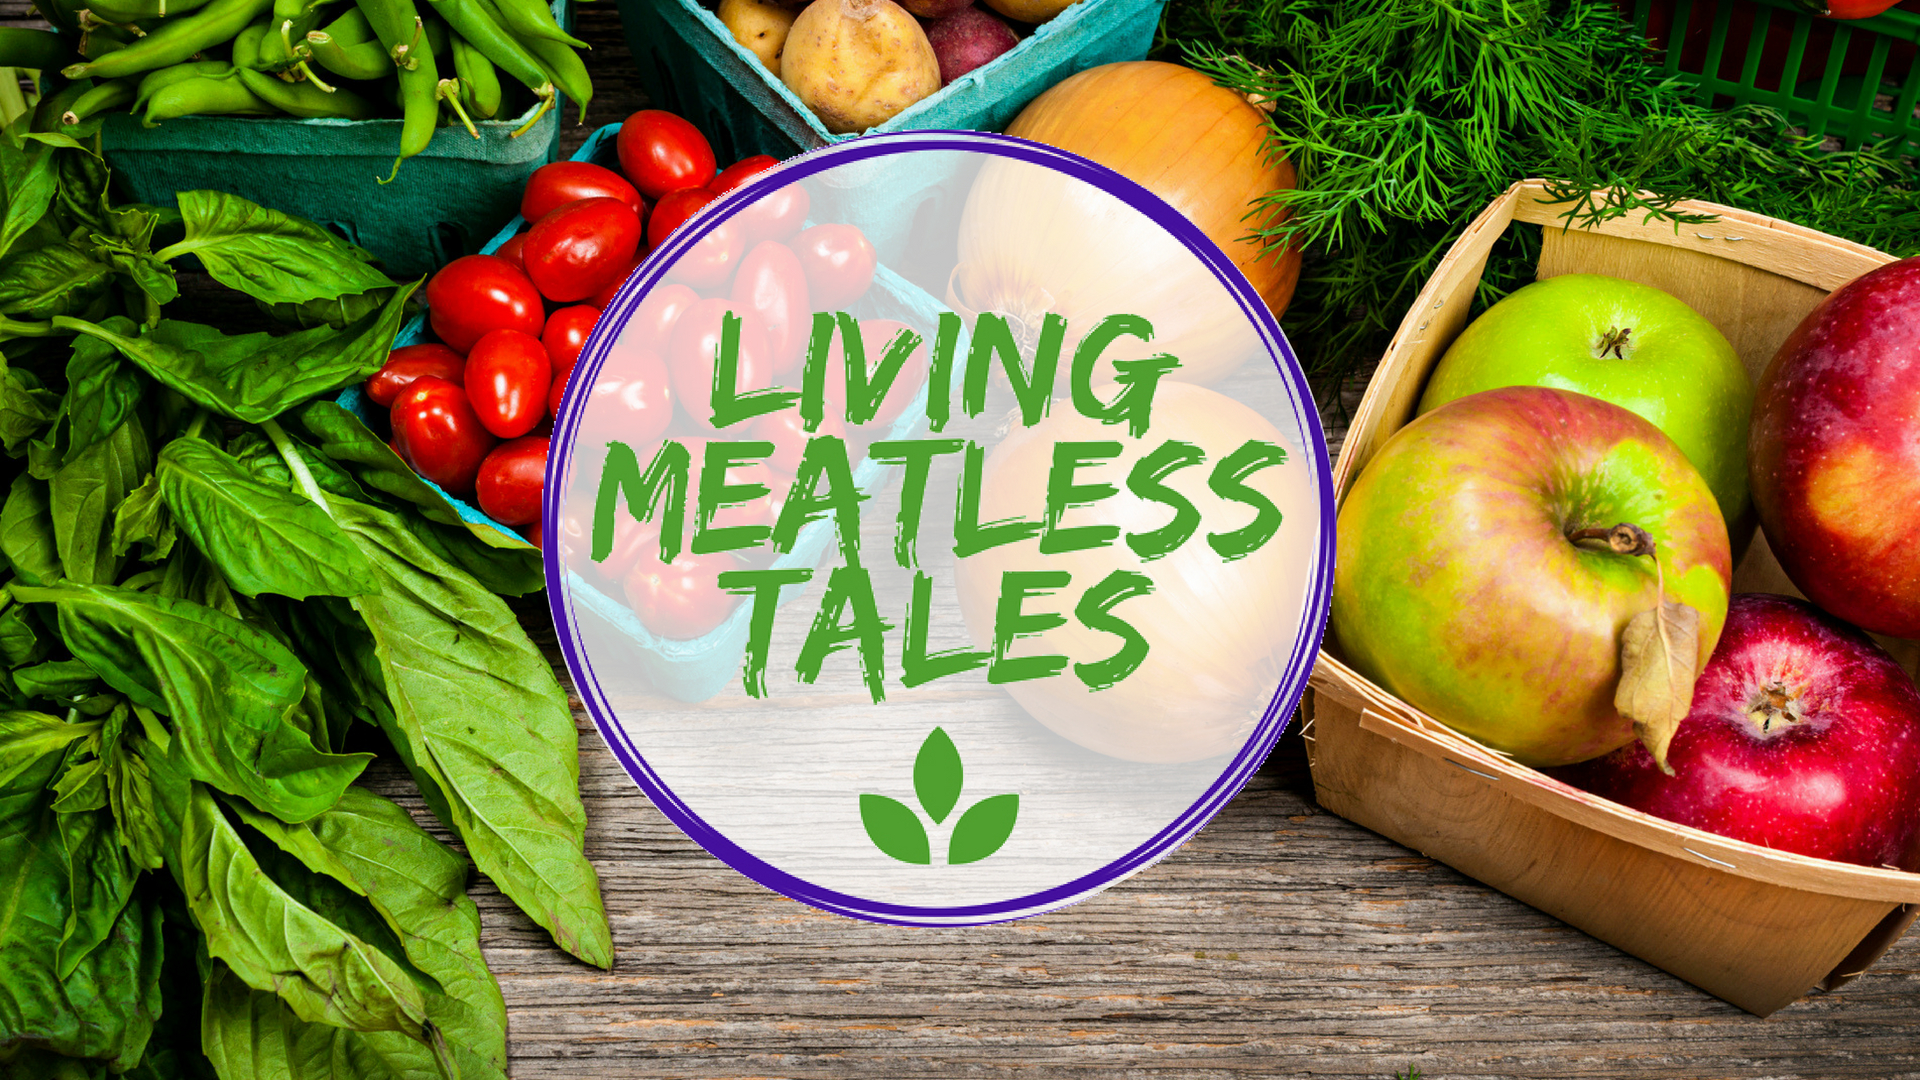 Living Meatless Tales banner